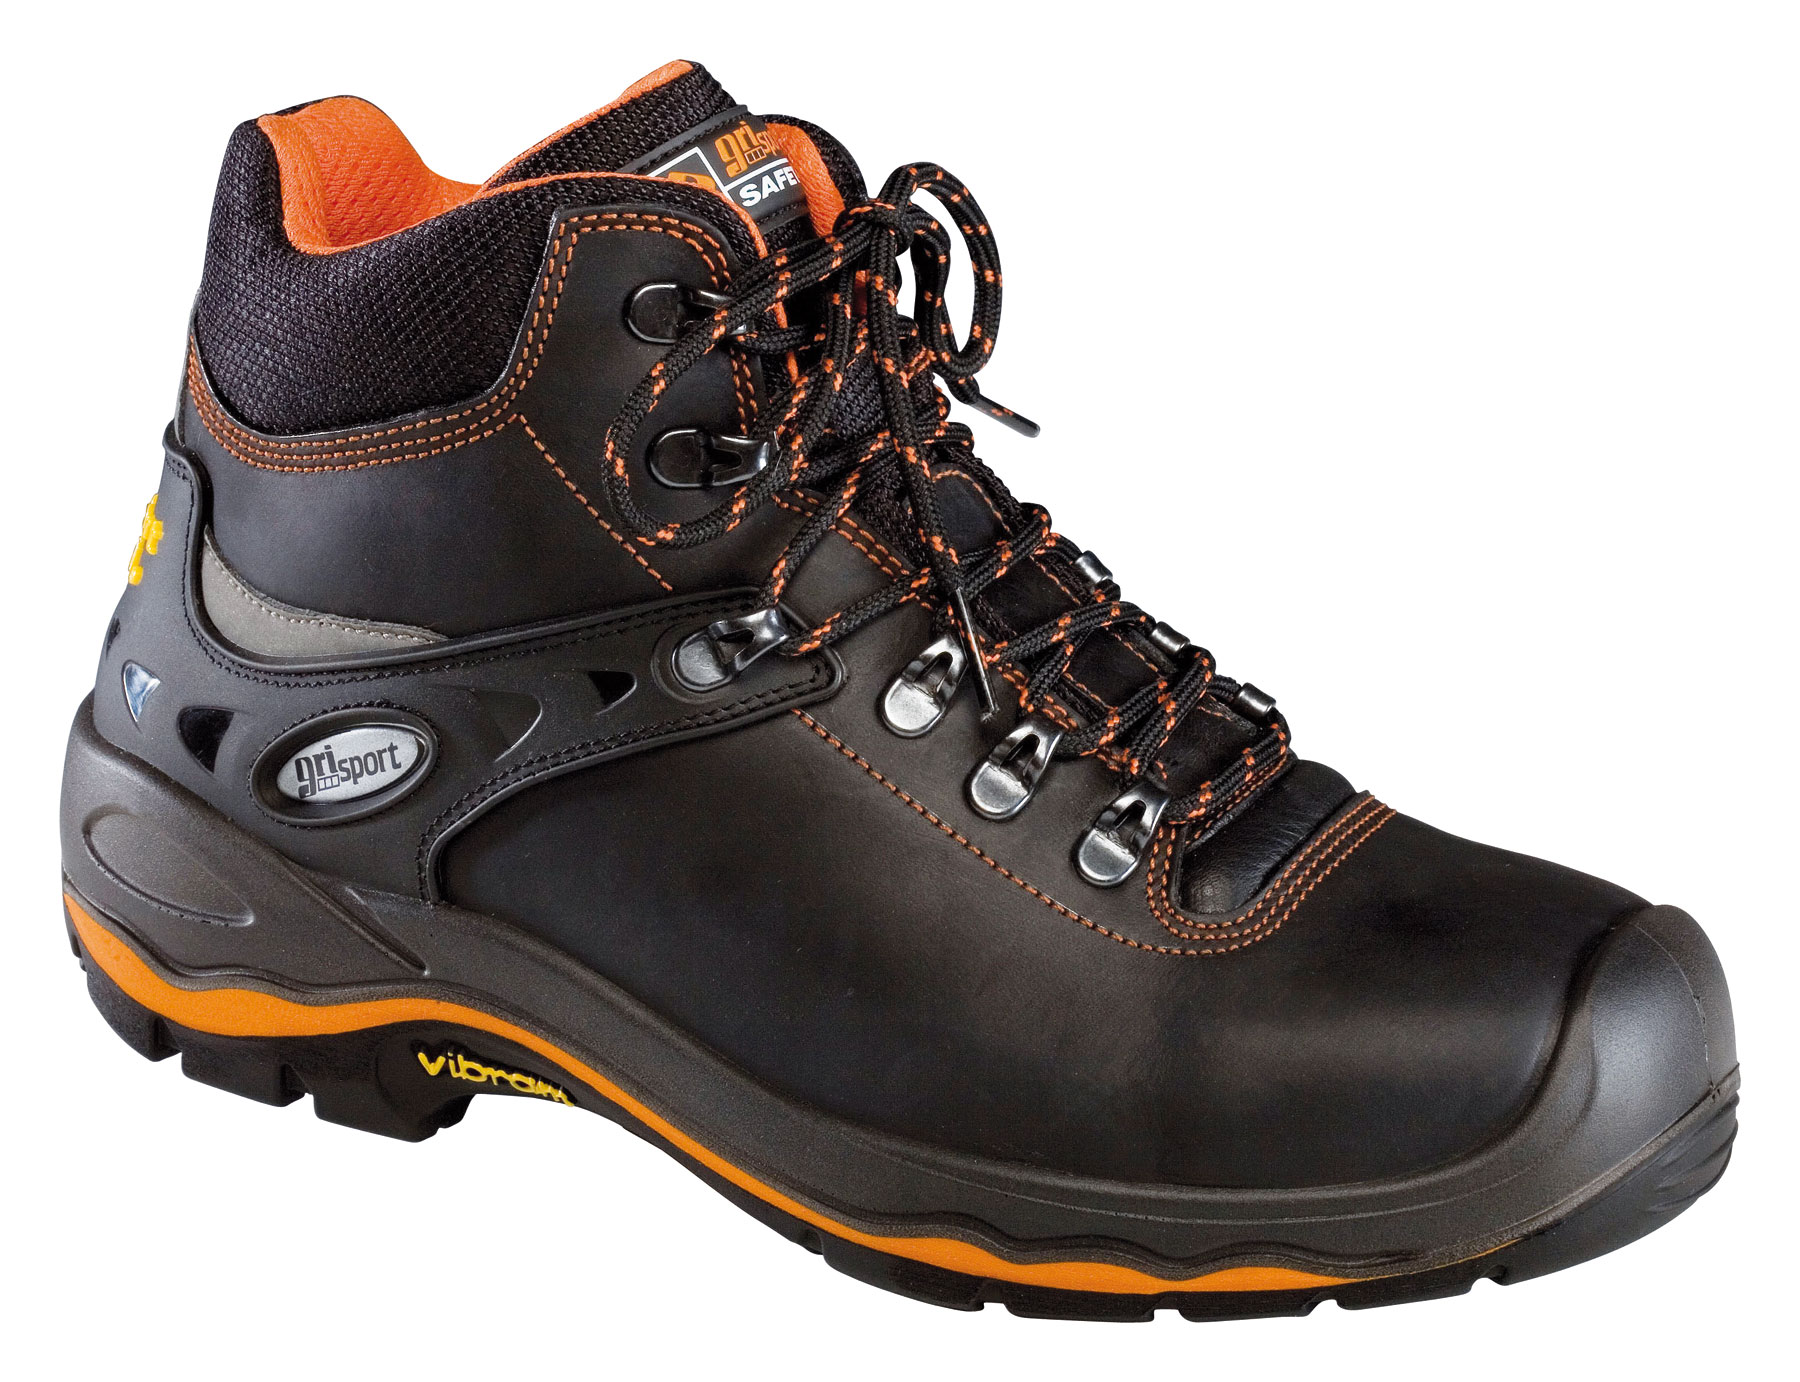 Grisport 72003 var 30 - Black/Orange - 36